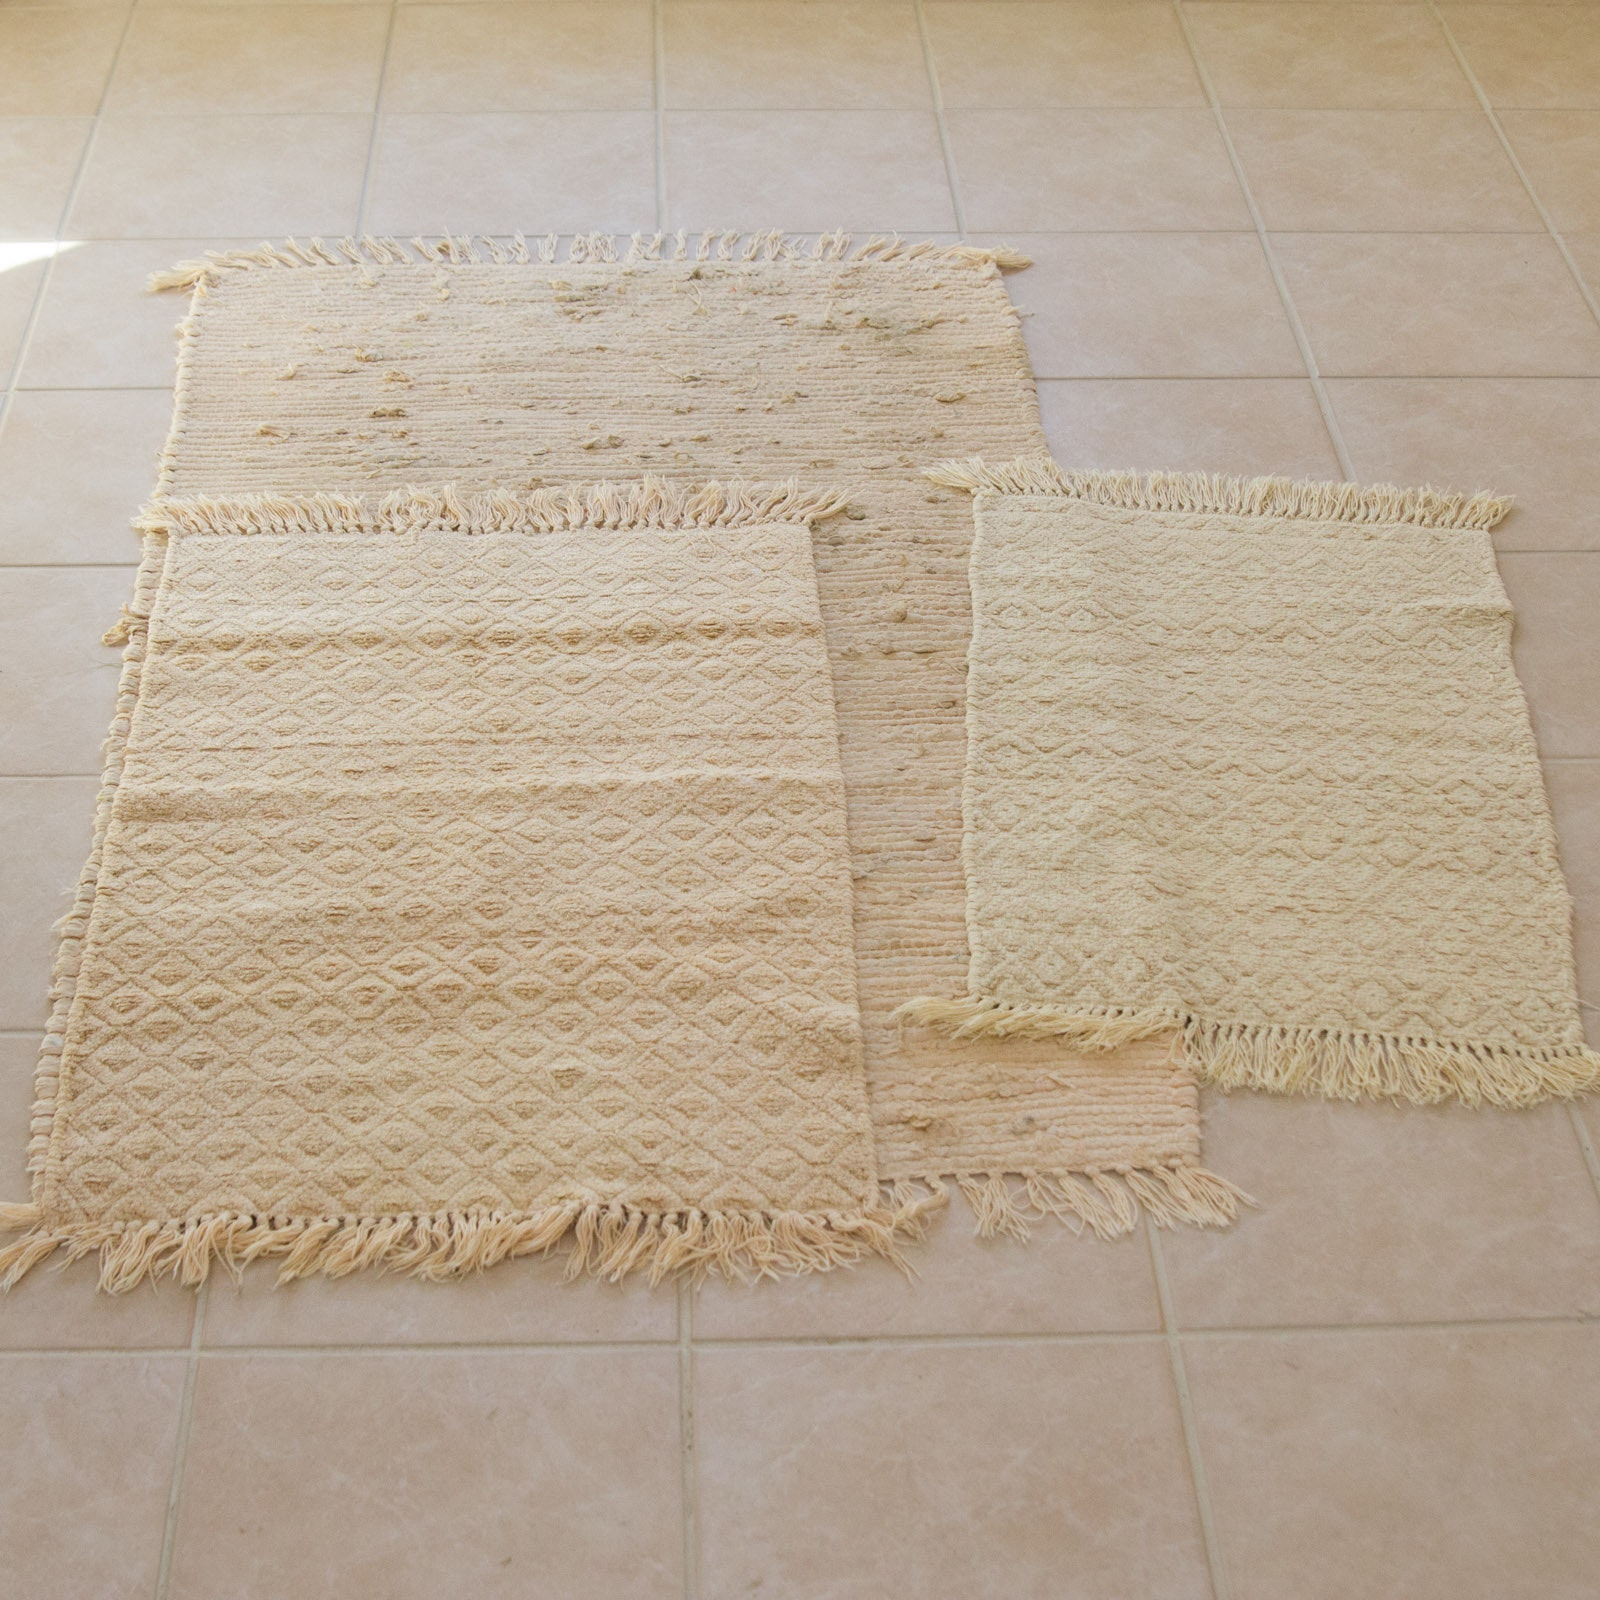 Assortment of Three Rag Rugs